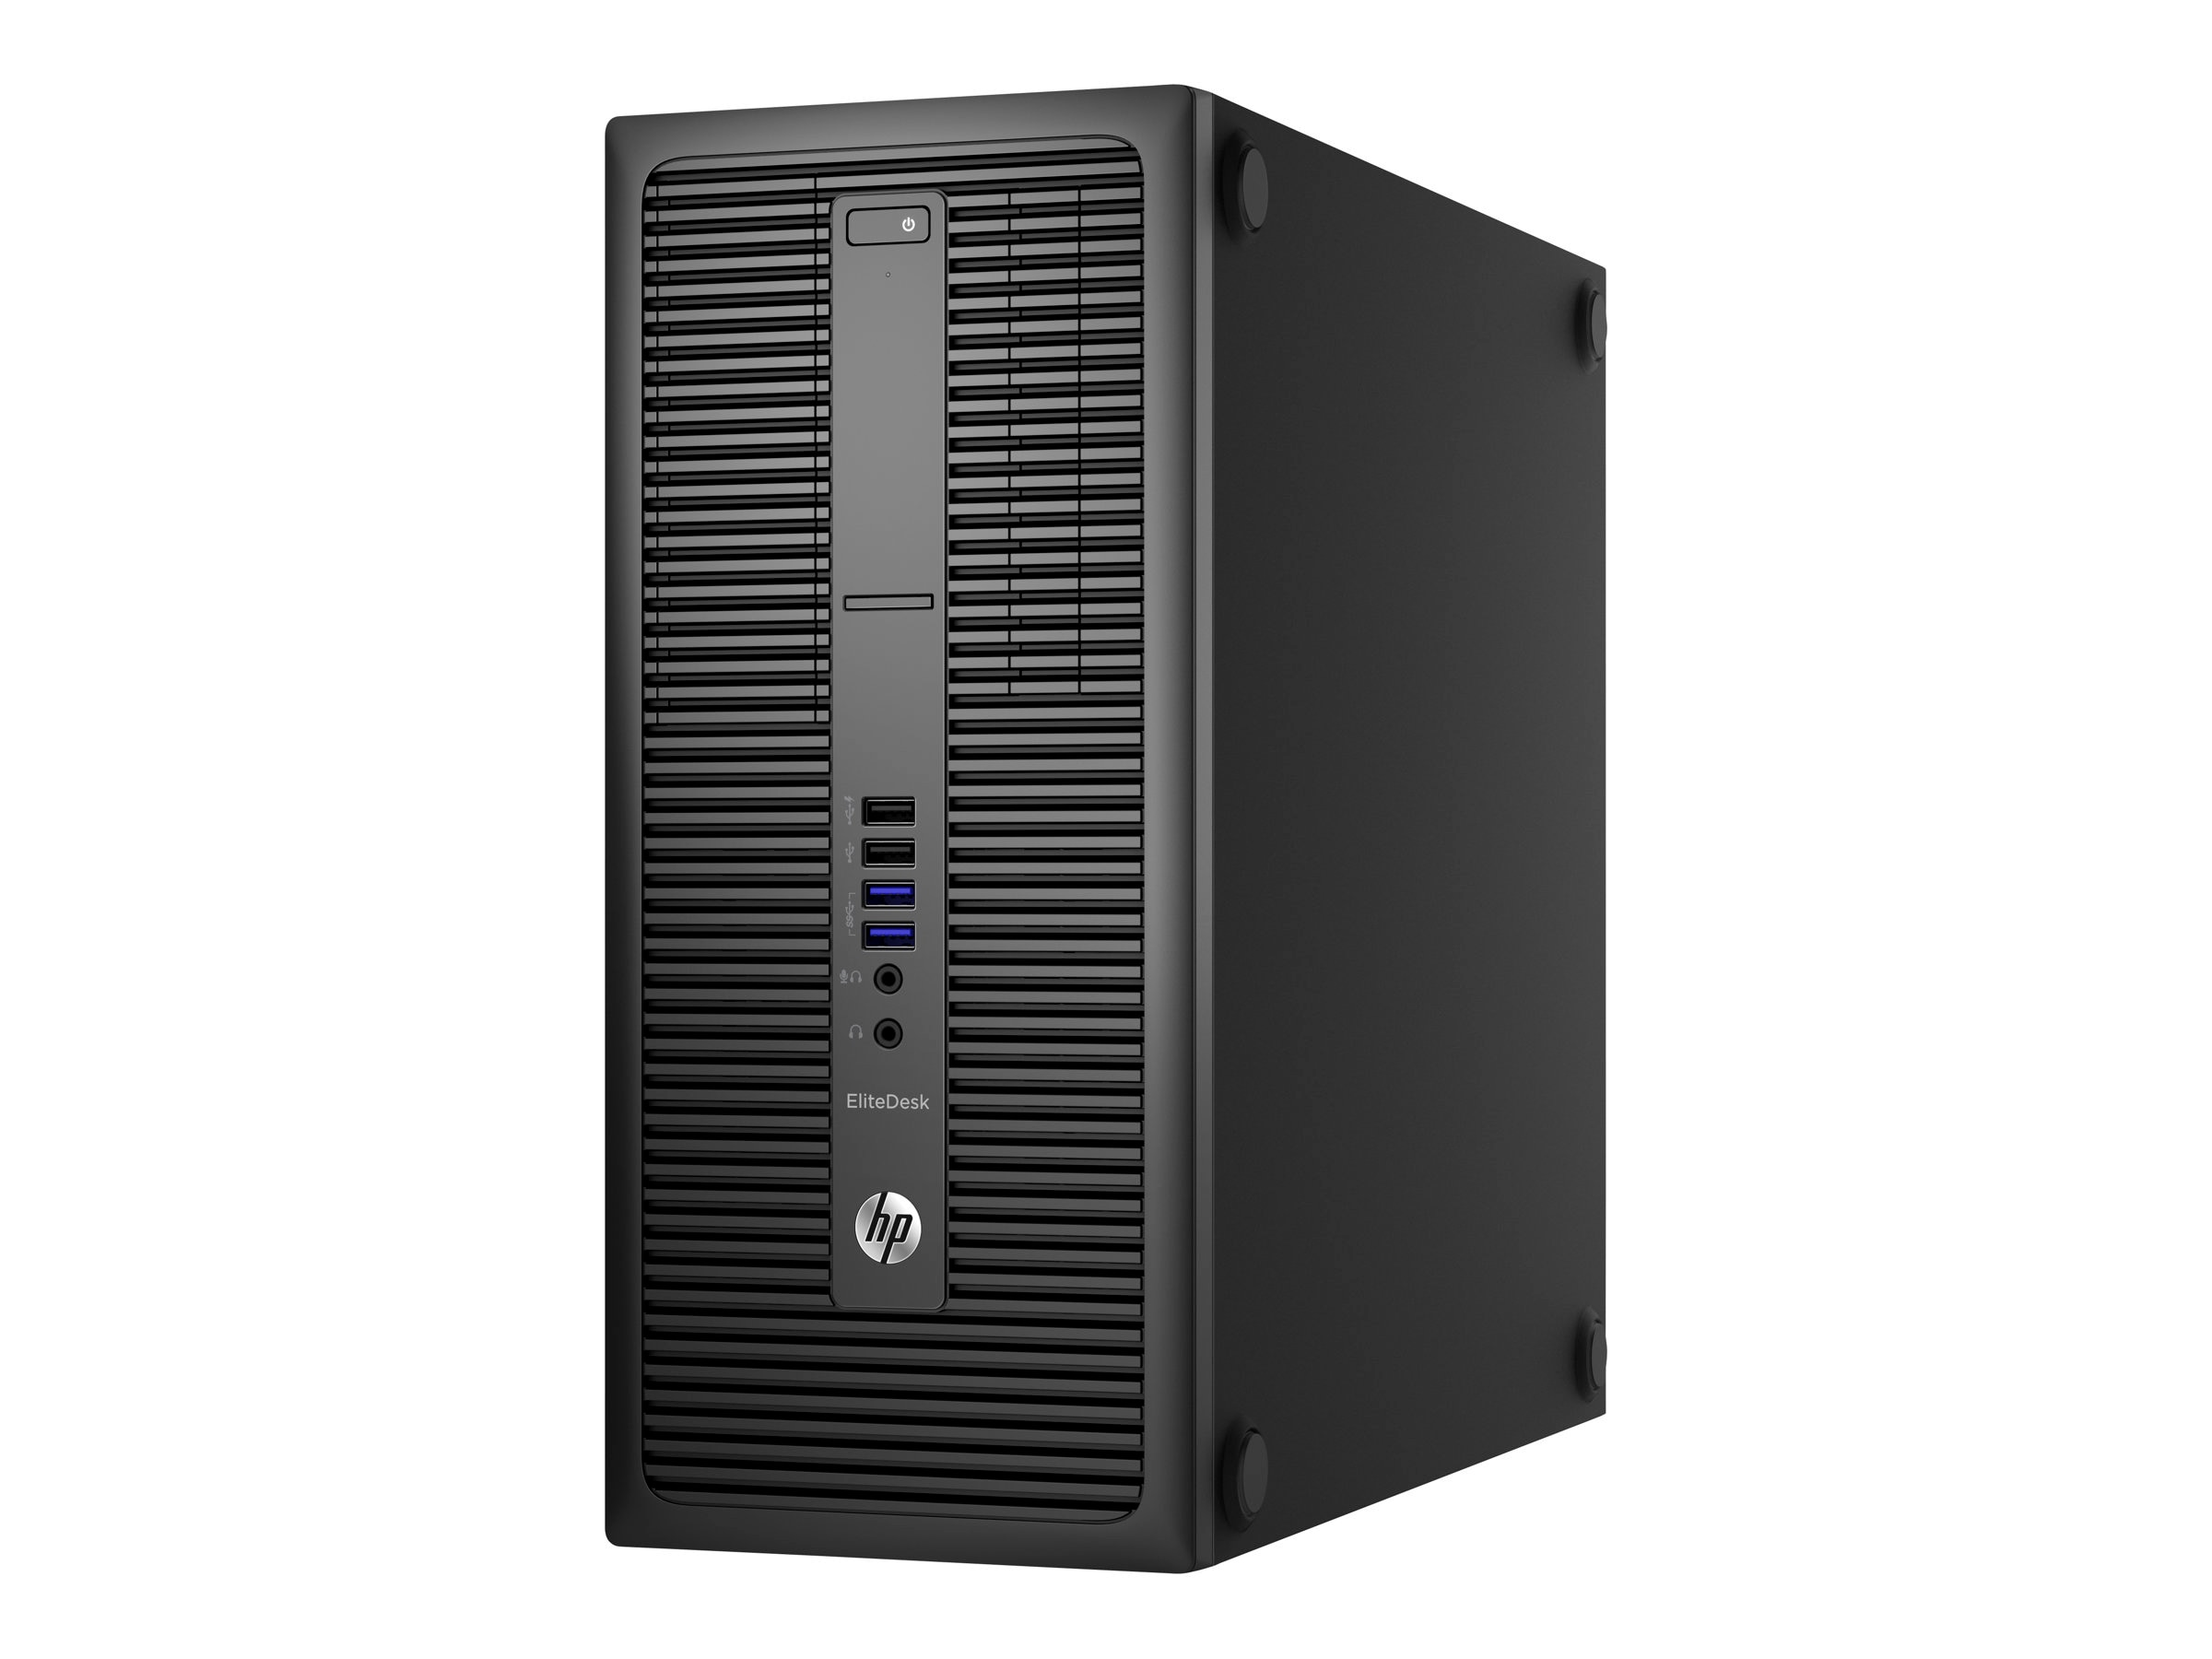 HP EliteDesk 800 G2 3.2GHz Core i5 8GB RAM 500GB hard drive